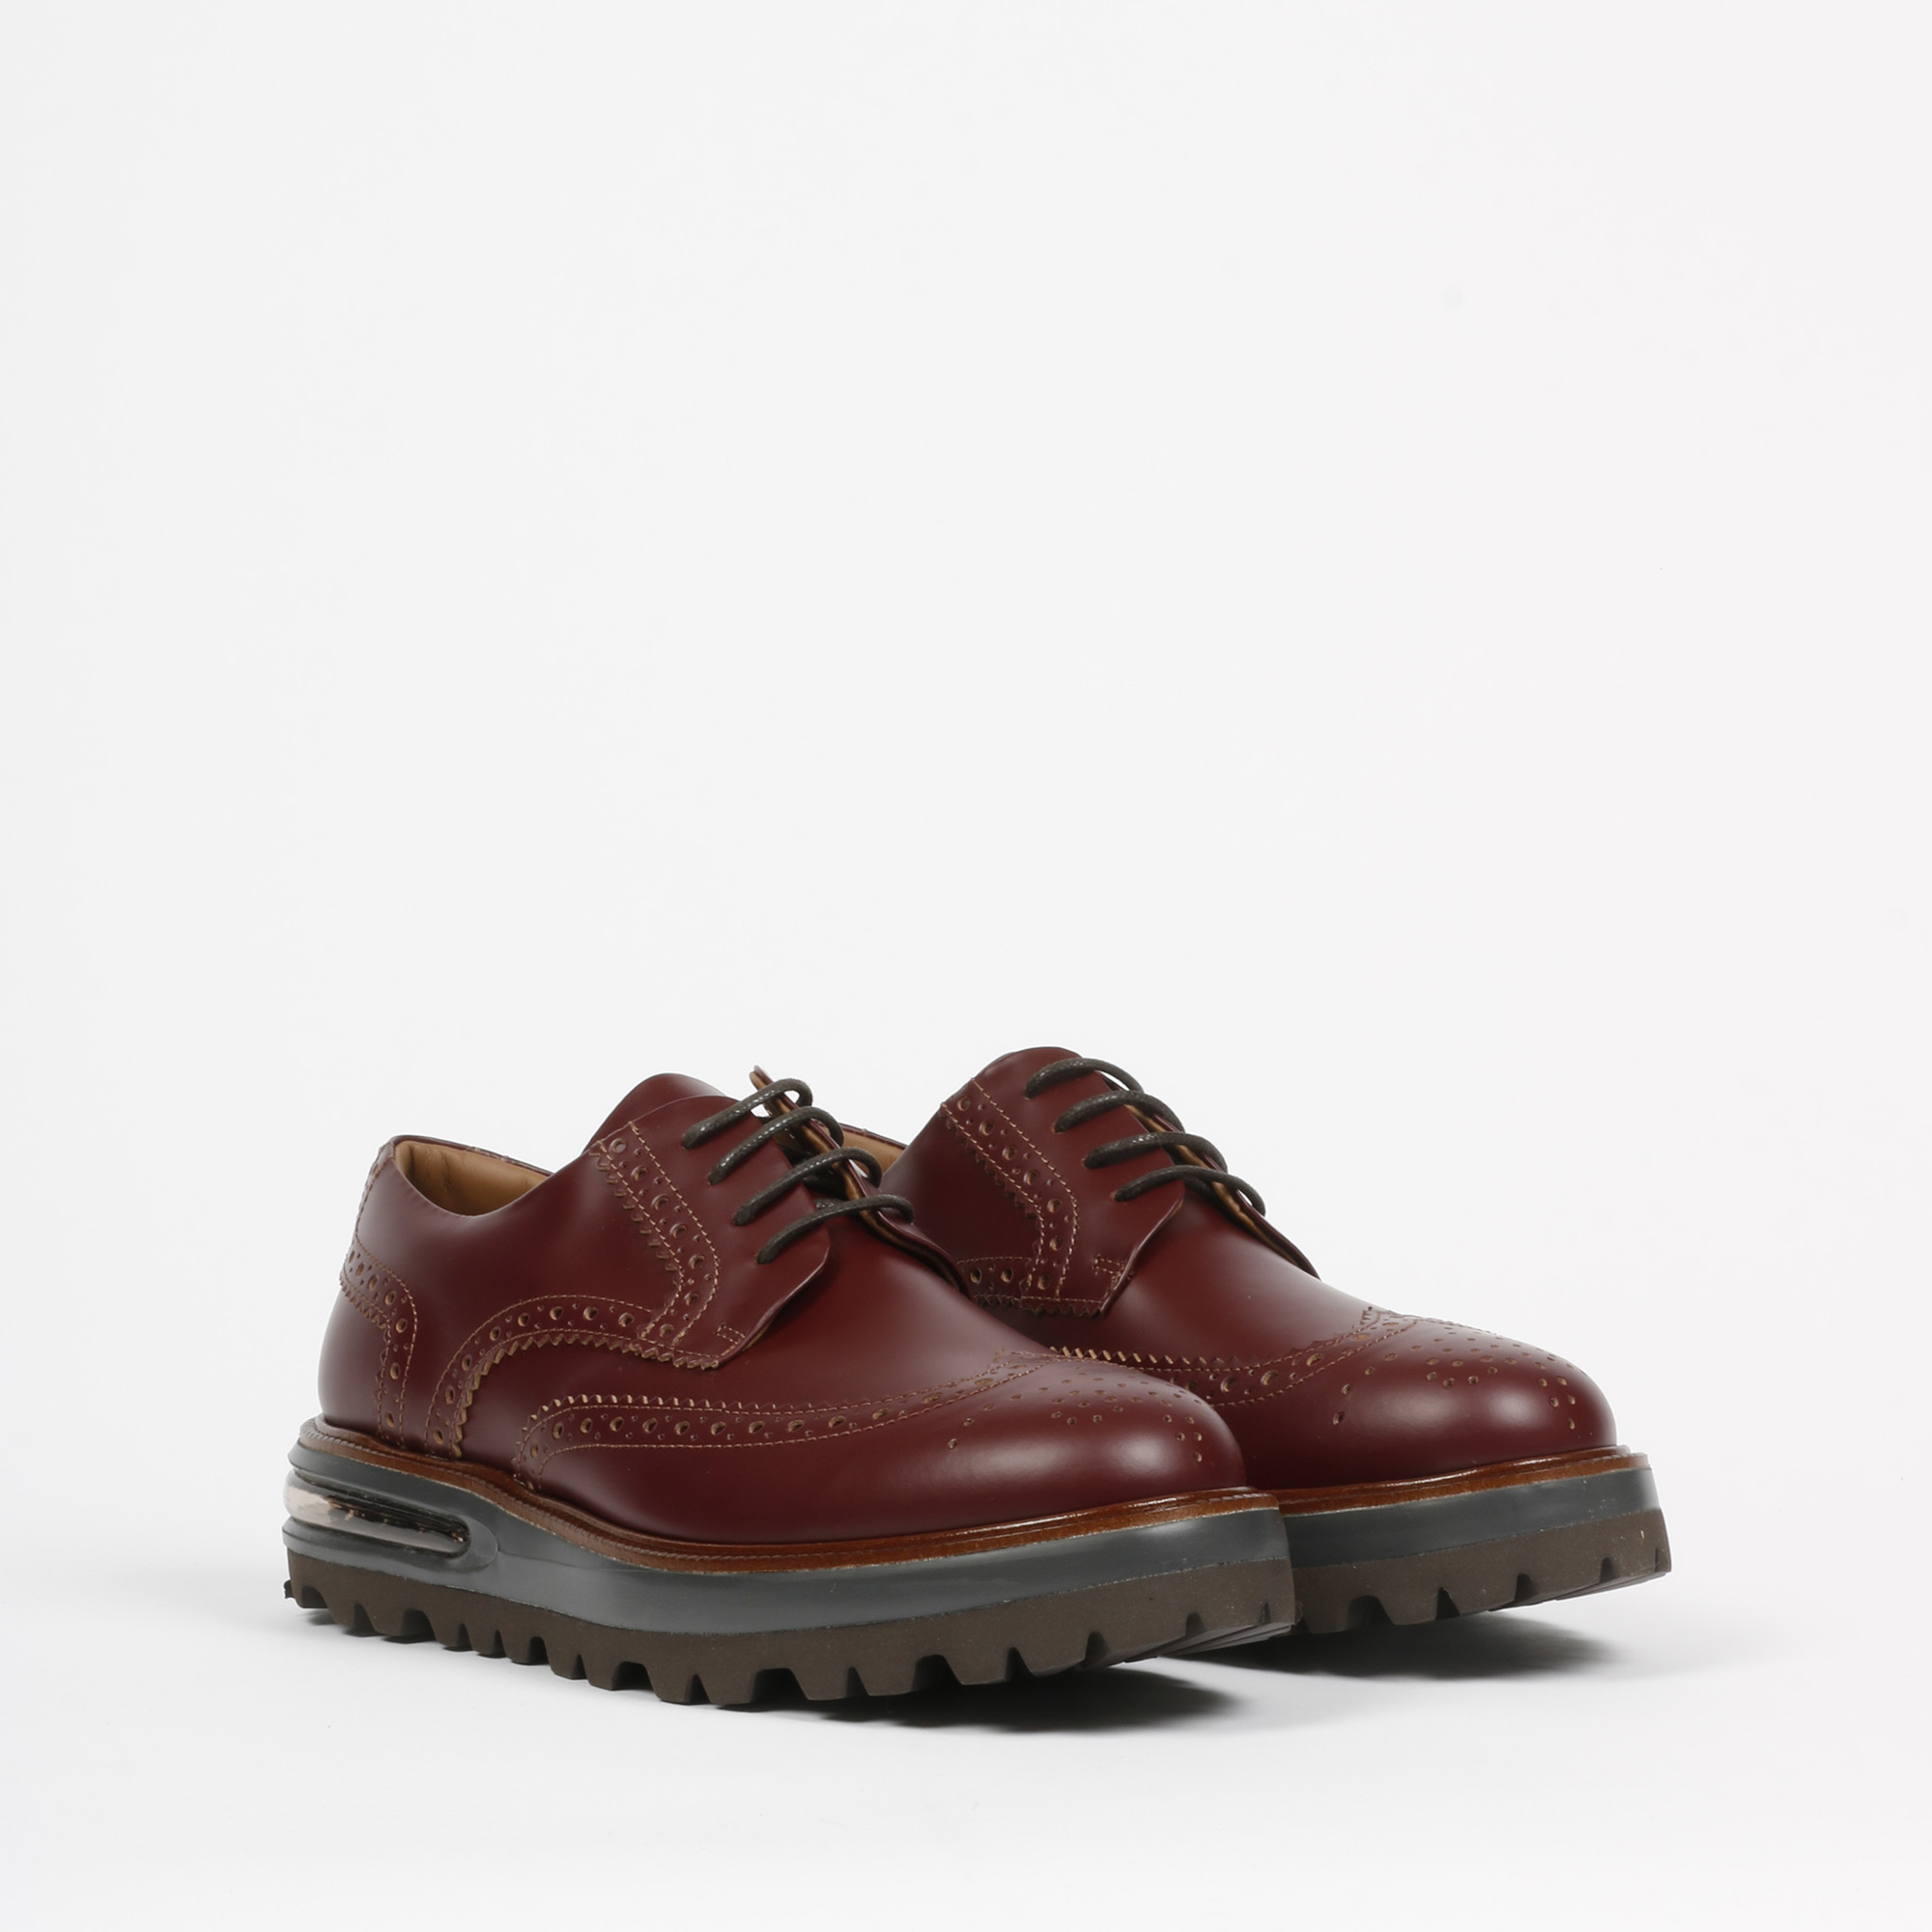 Air brogue heritage leather - Bordeaux